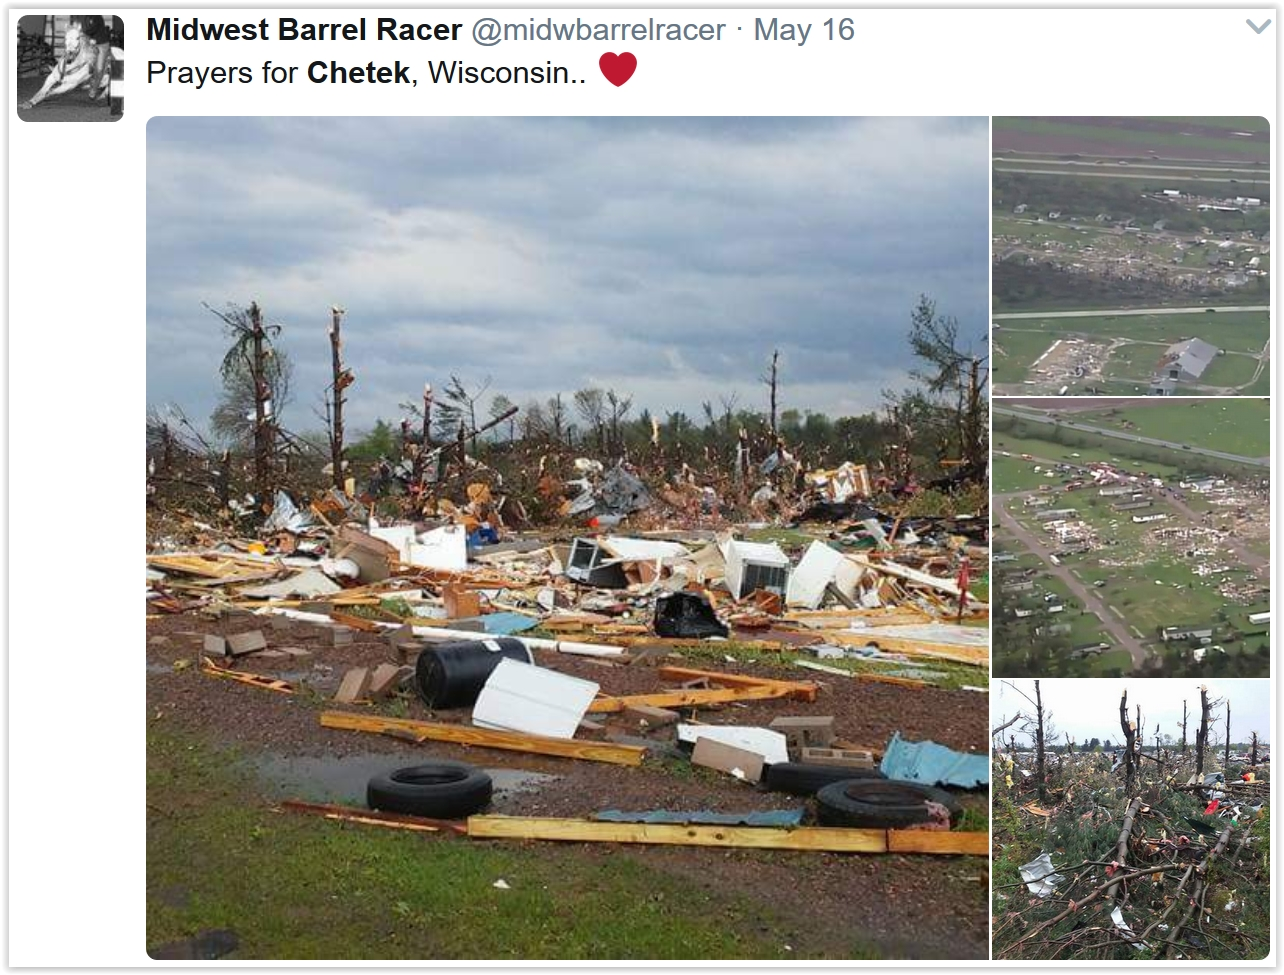 Tornadoes and manufactured housing a bad mix in light of the deadly chetek wisconsin tornado i reviewed minnesota s regulations